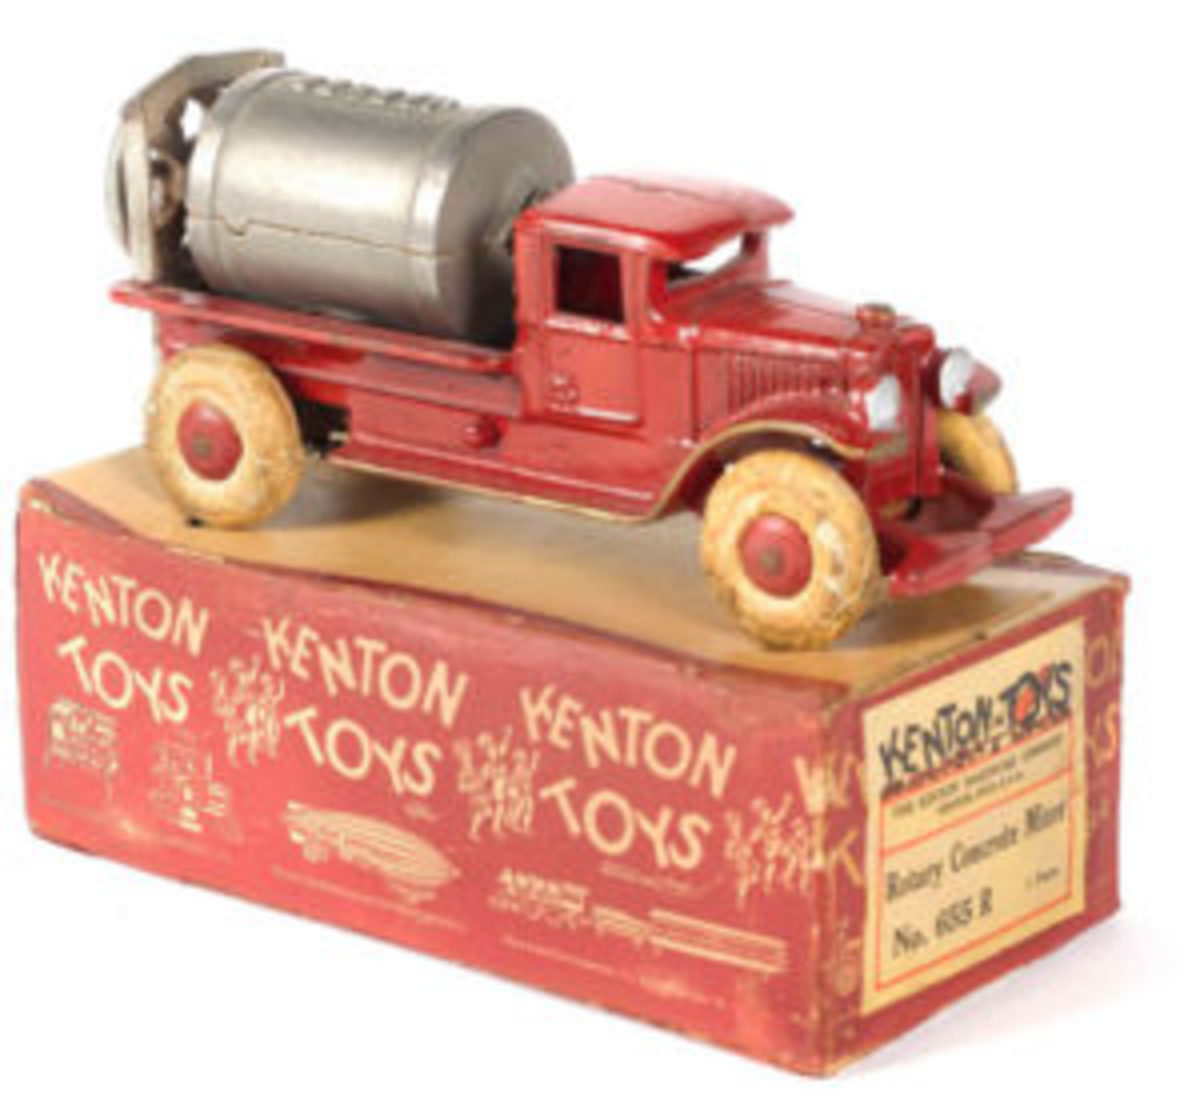 Cast-iron cement mixer toy